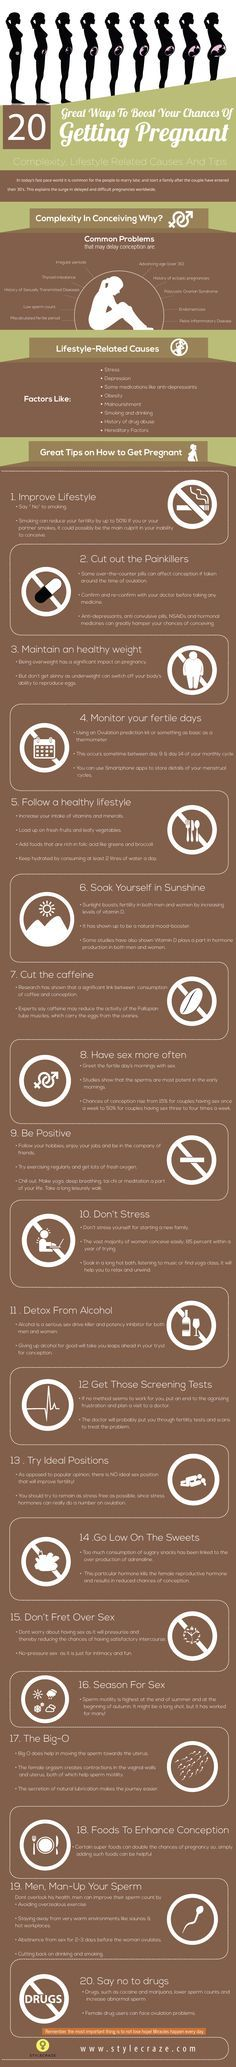 20 Great Tips To Improve Your Chances Of Getting Pregnant